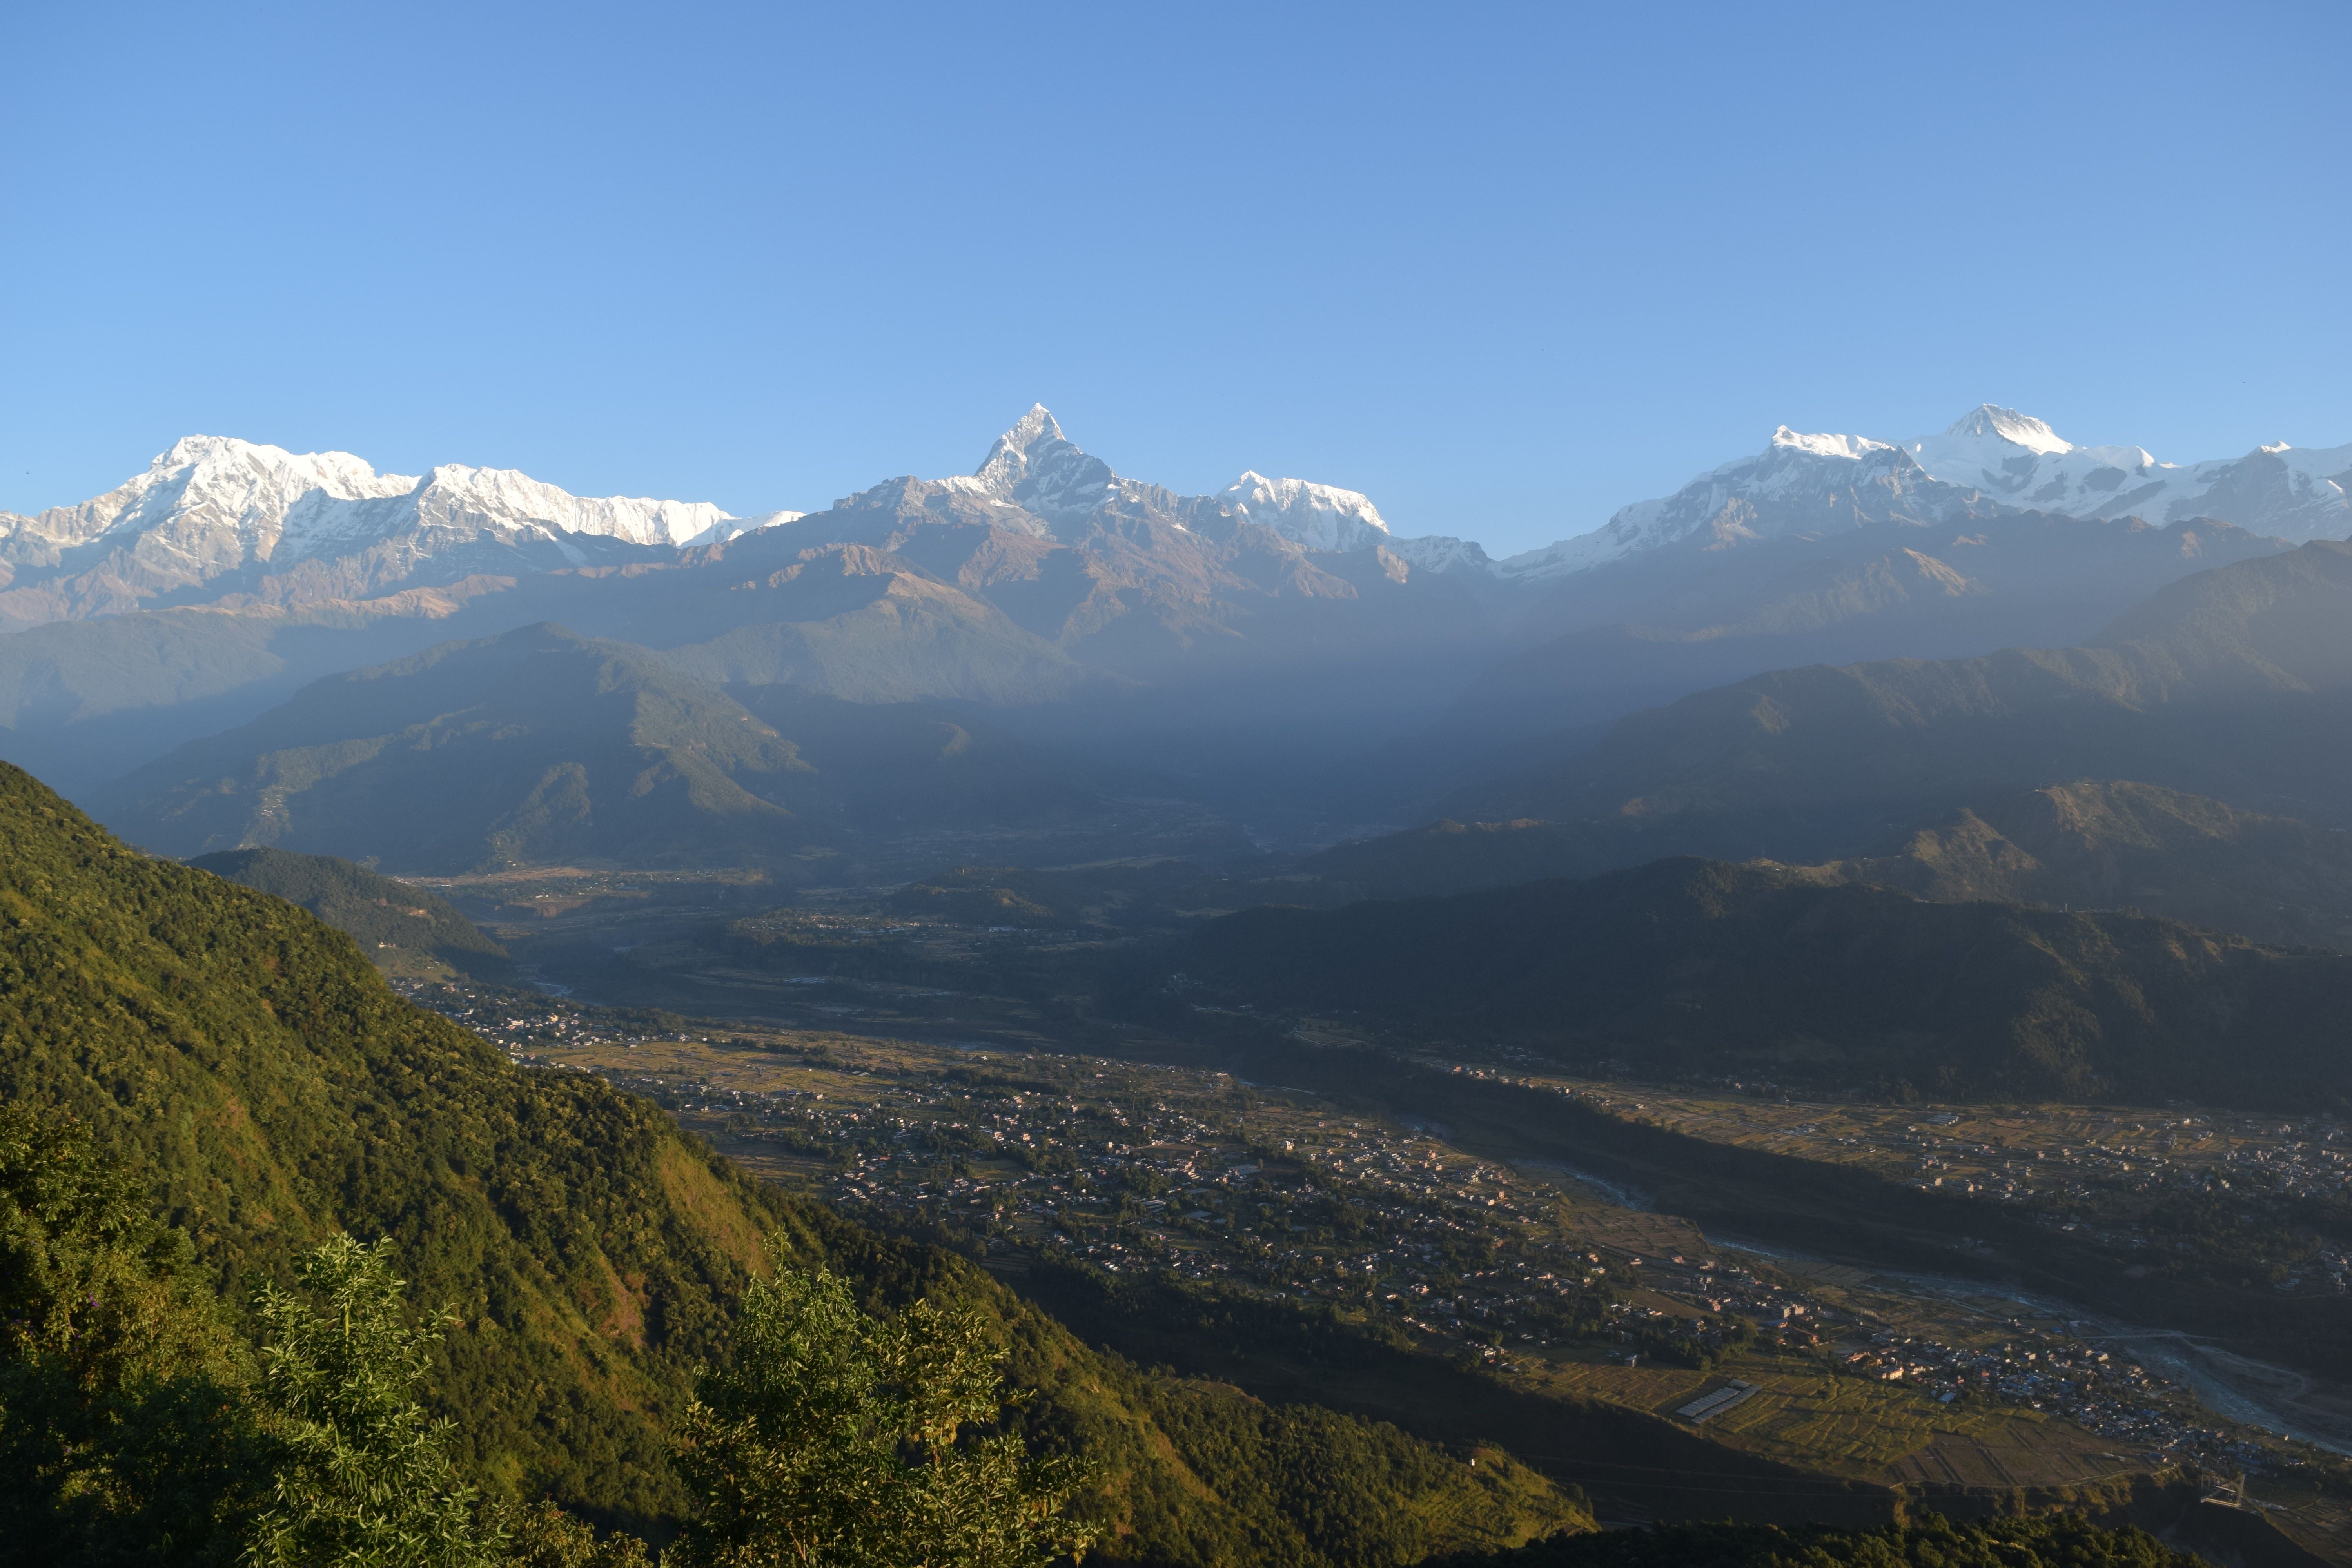 Will an ambitious Chinese-built rail line through the Himalayas lead to a debt trap for Nepal?